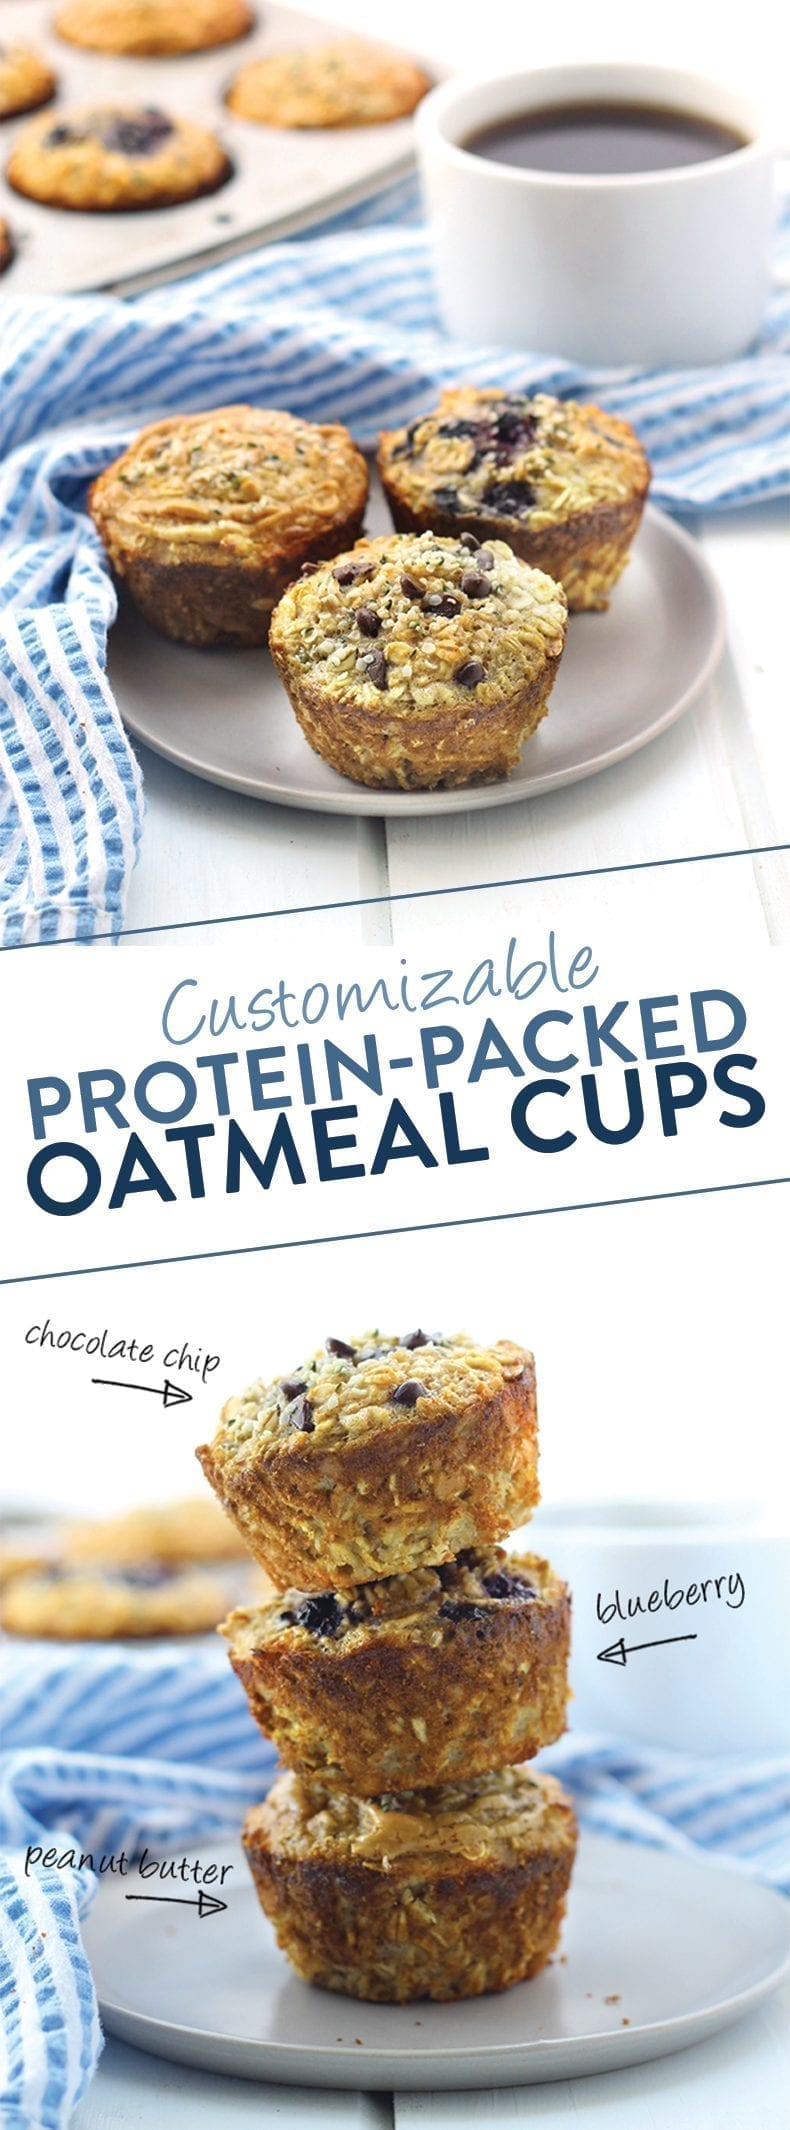 Looking for a protein-packed breakfast you can make your own? These Customizable Protein Oatmeal Cups are healthy, have 11 grams of protein and are a great on-the-go breakfast for everyday #proteinpacked #oatmealcups